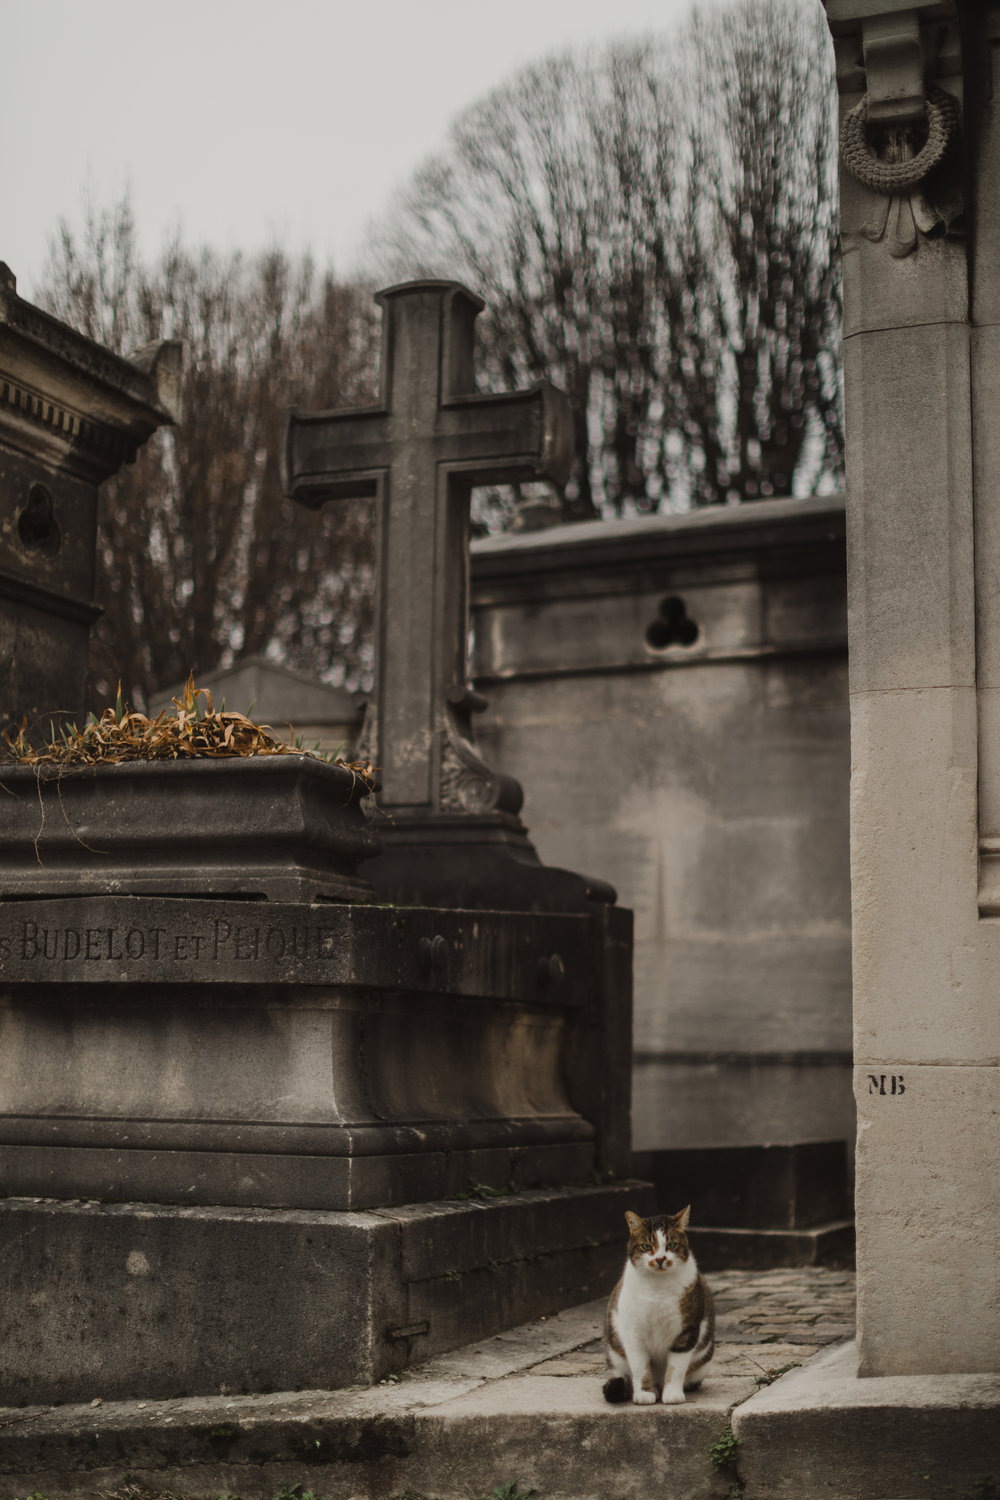 The sweetest cat hanging out in the cemetery Pere Lachaise